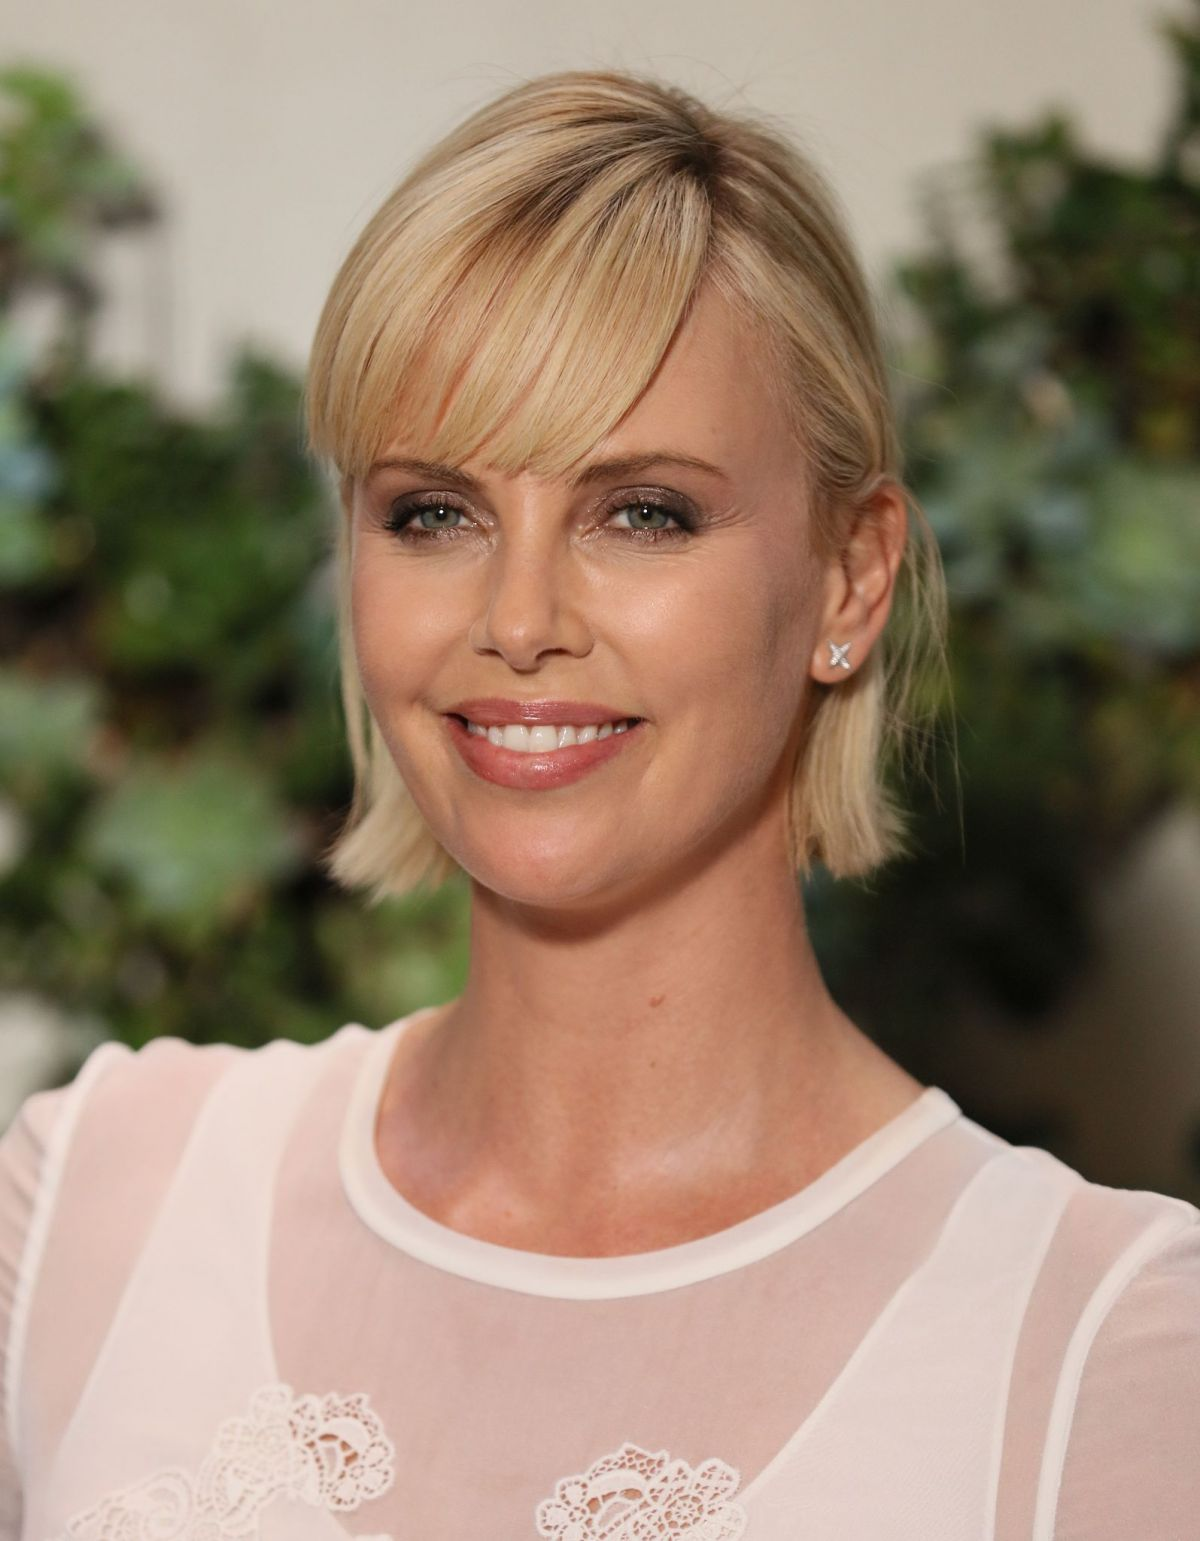 CHARLIZE THERON at 'Kubo and the Two String' Photocall in Los Angeles... Charlize Theron